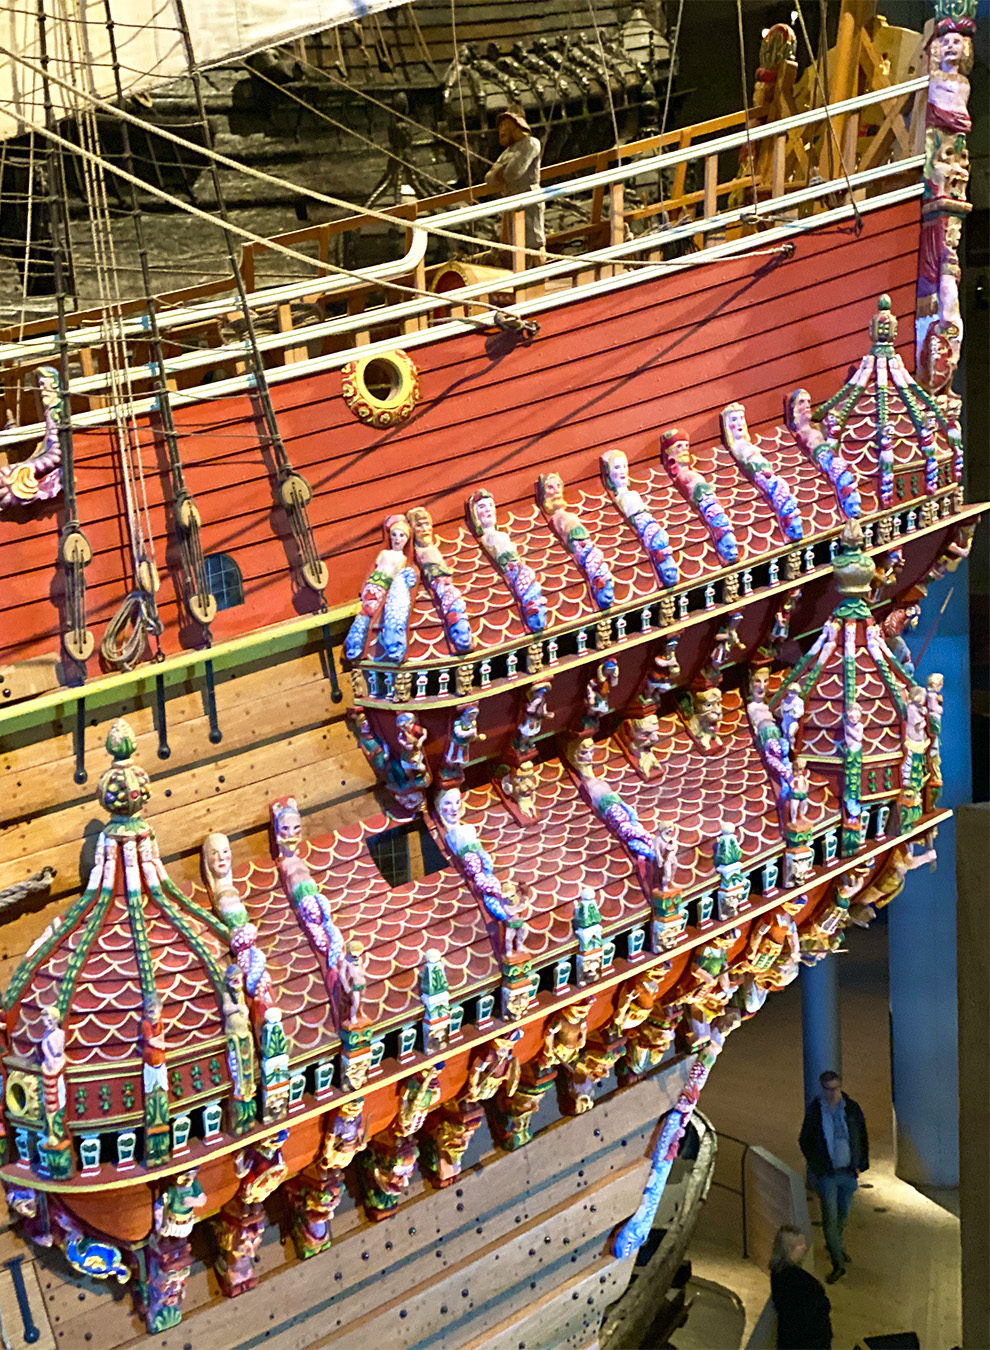 Colorful details of the Vasa boat replica